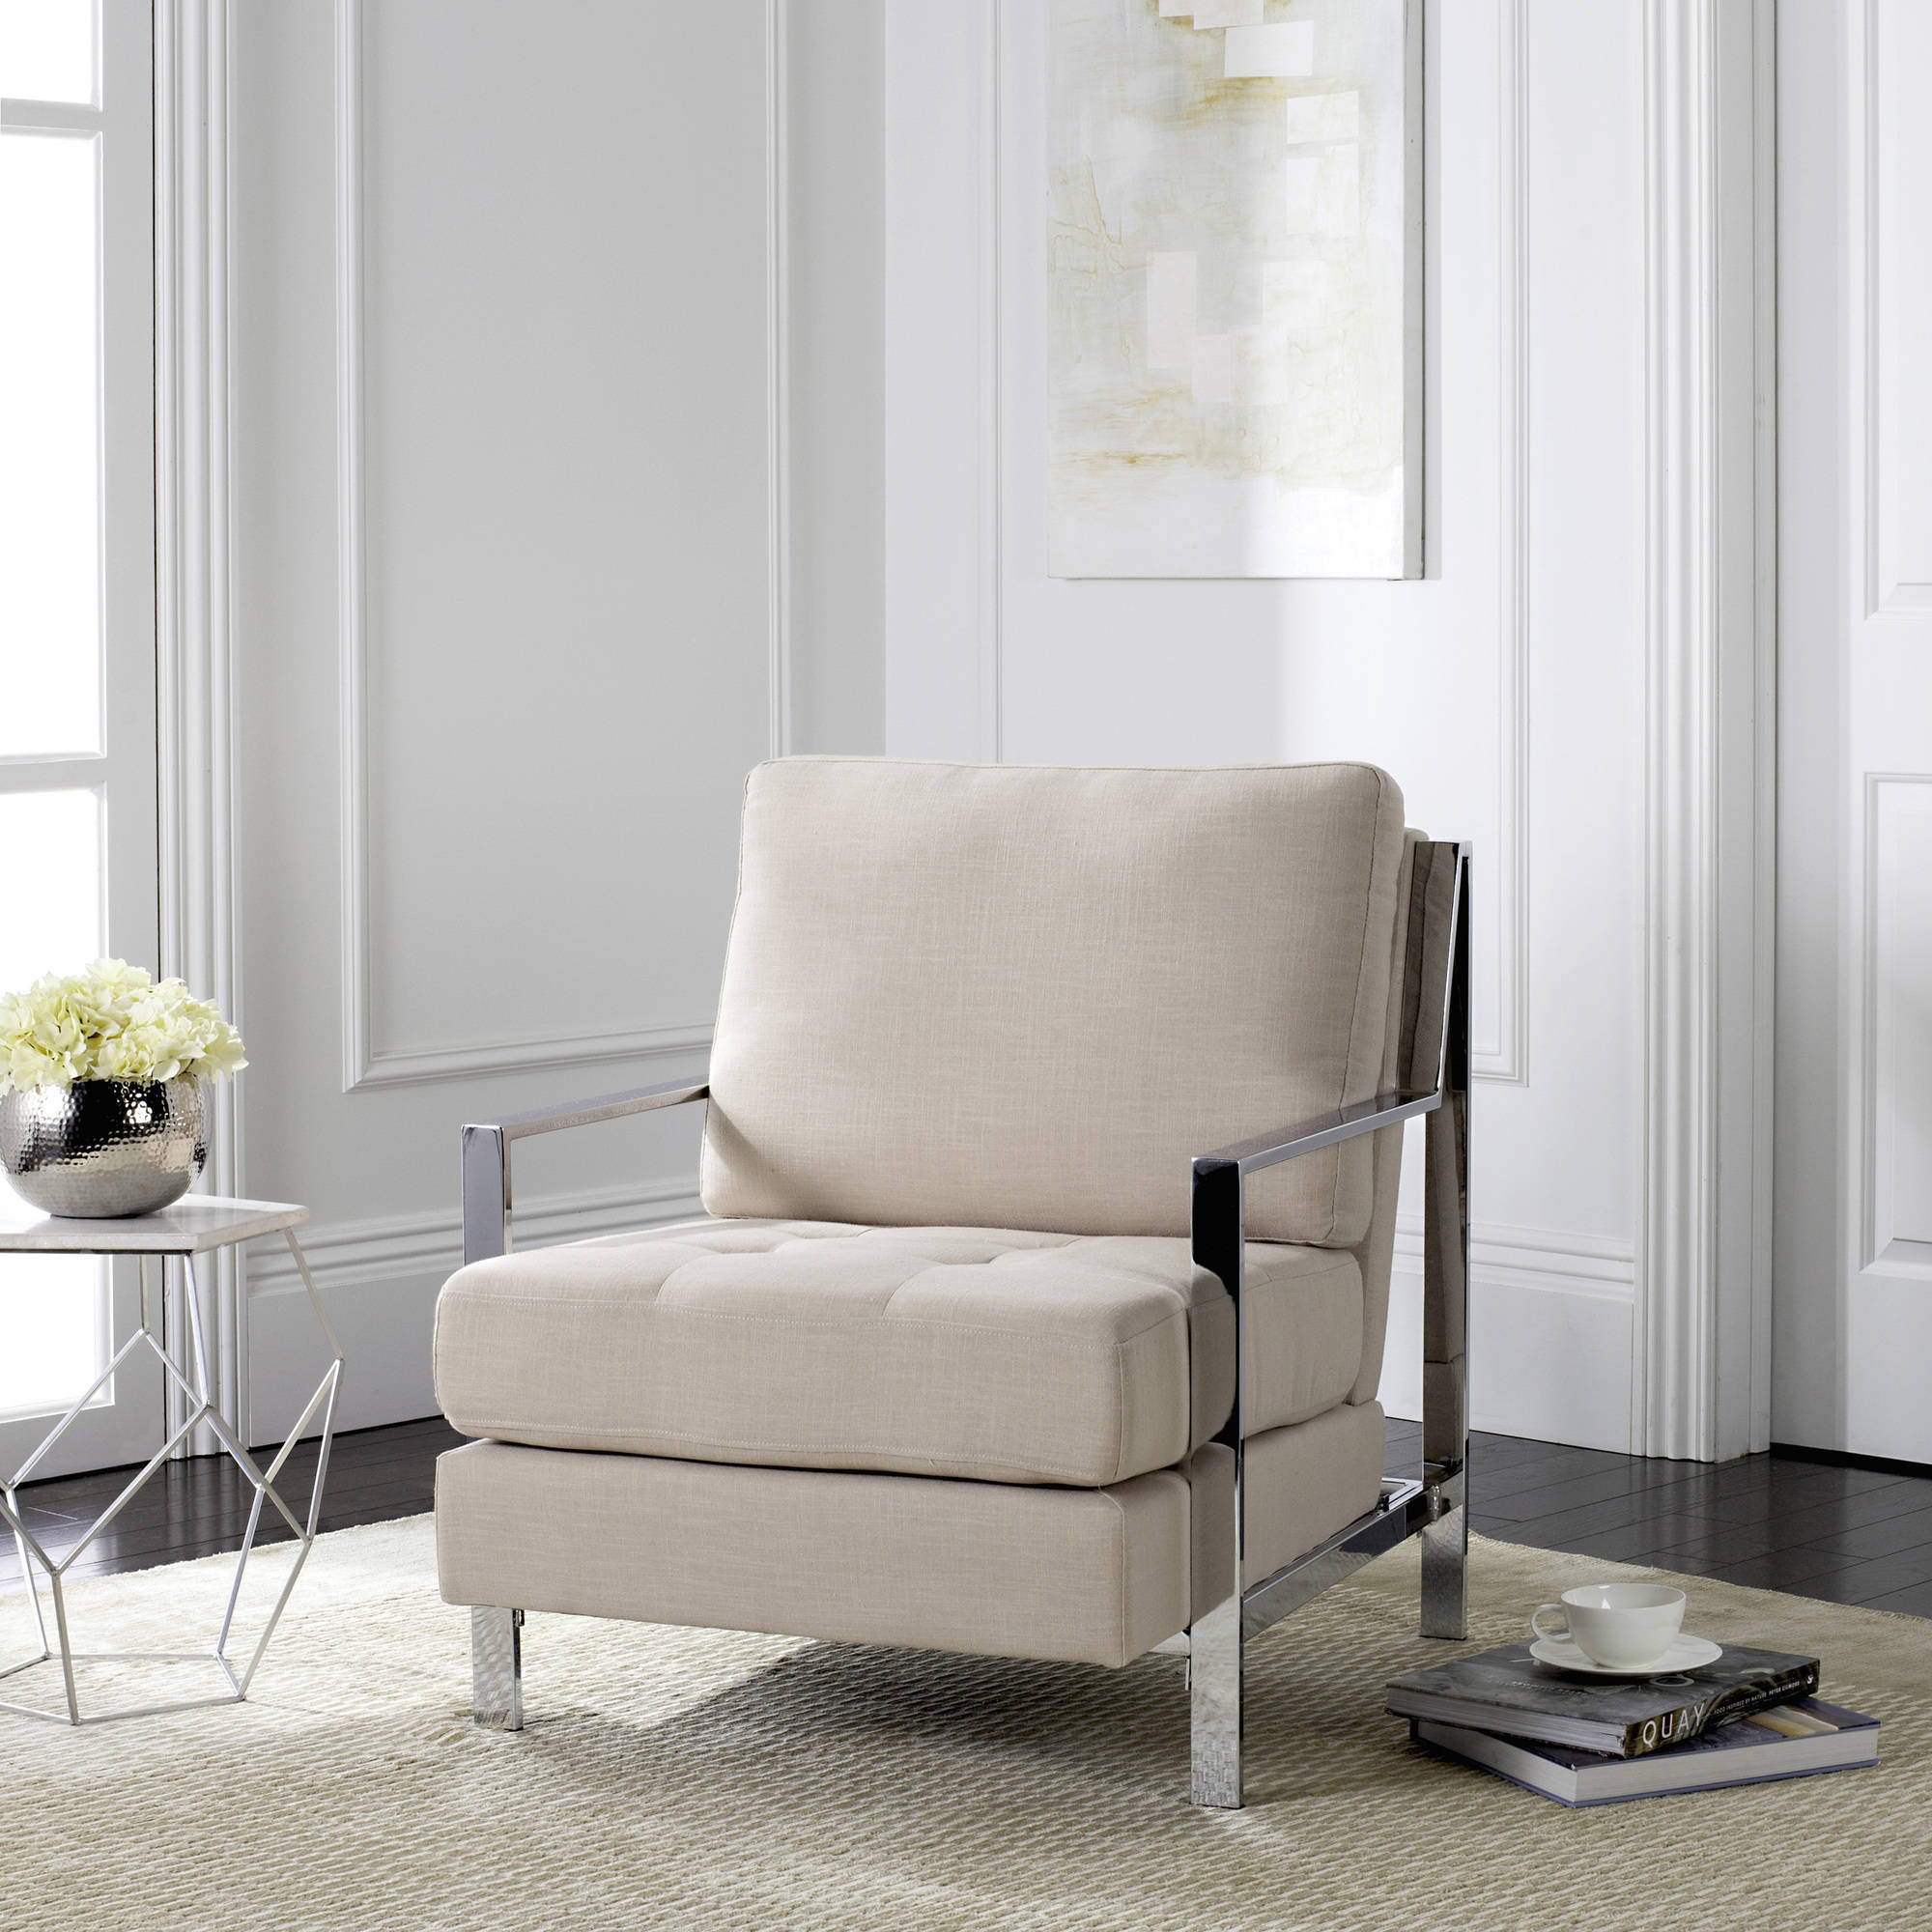 Safavieh Walden Modern Tufted Chrome Accent Chair, Multiple Colors